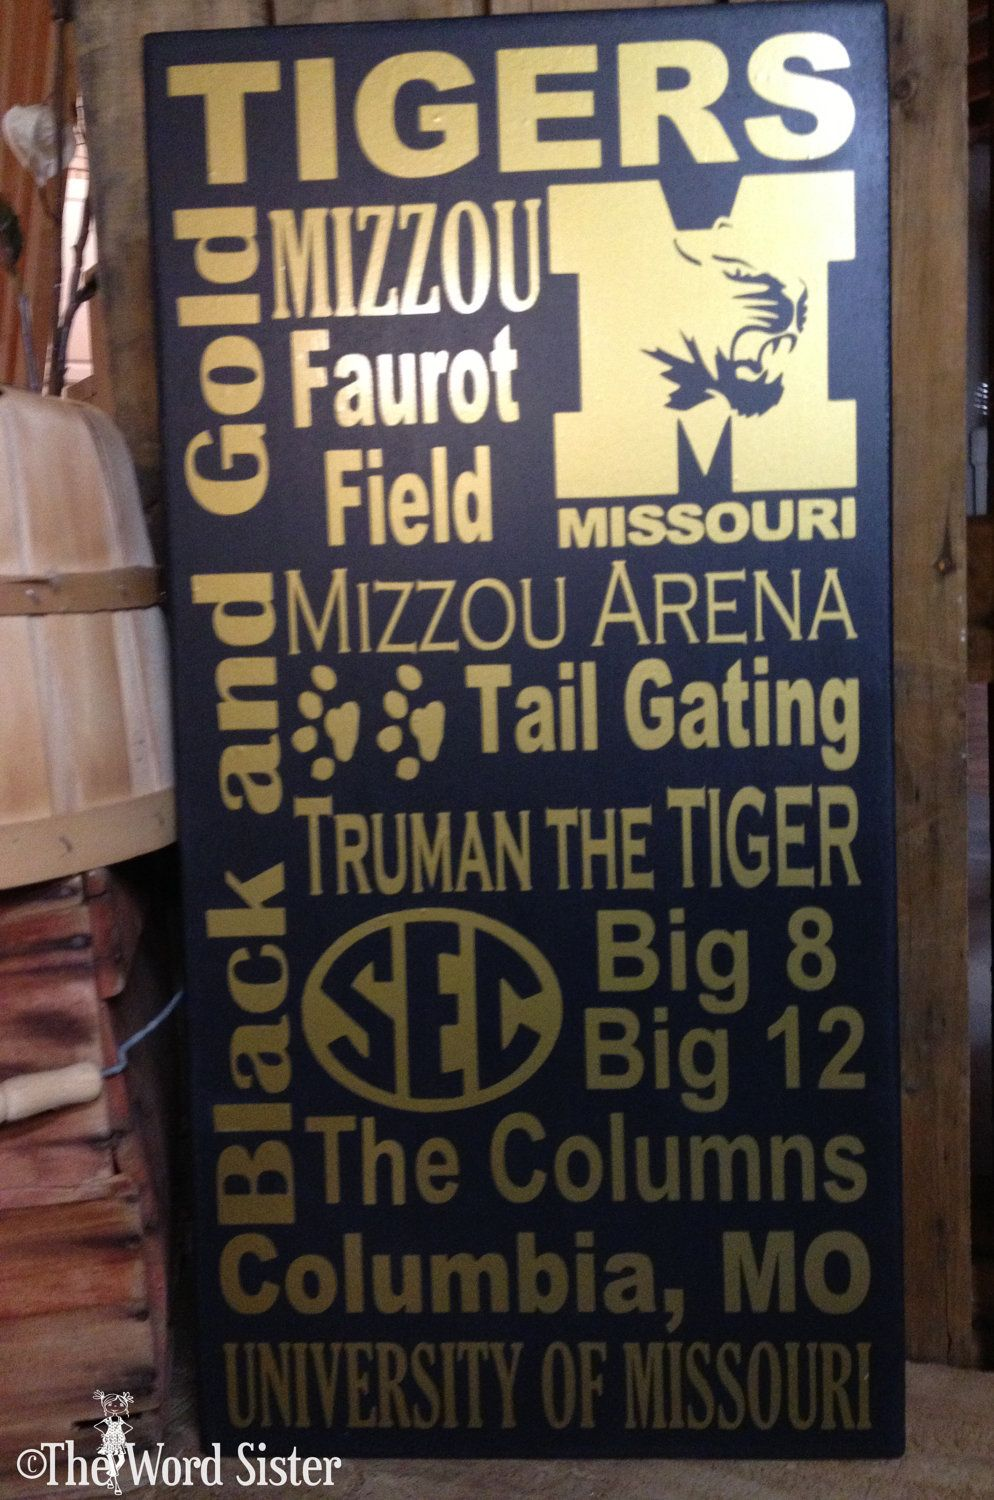 university of missouri tigers 12 x24 subway art by the. Black Bedroom Furniture Sets. Home Design Ideas